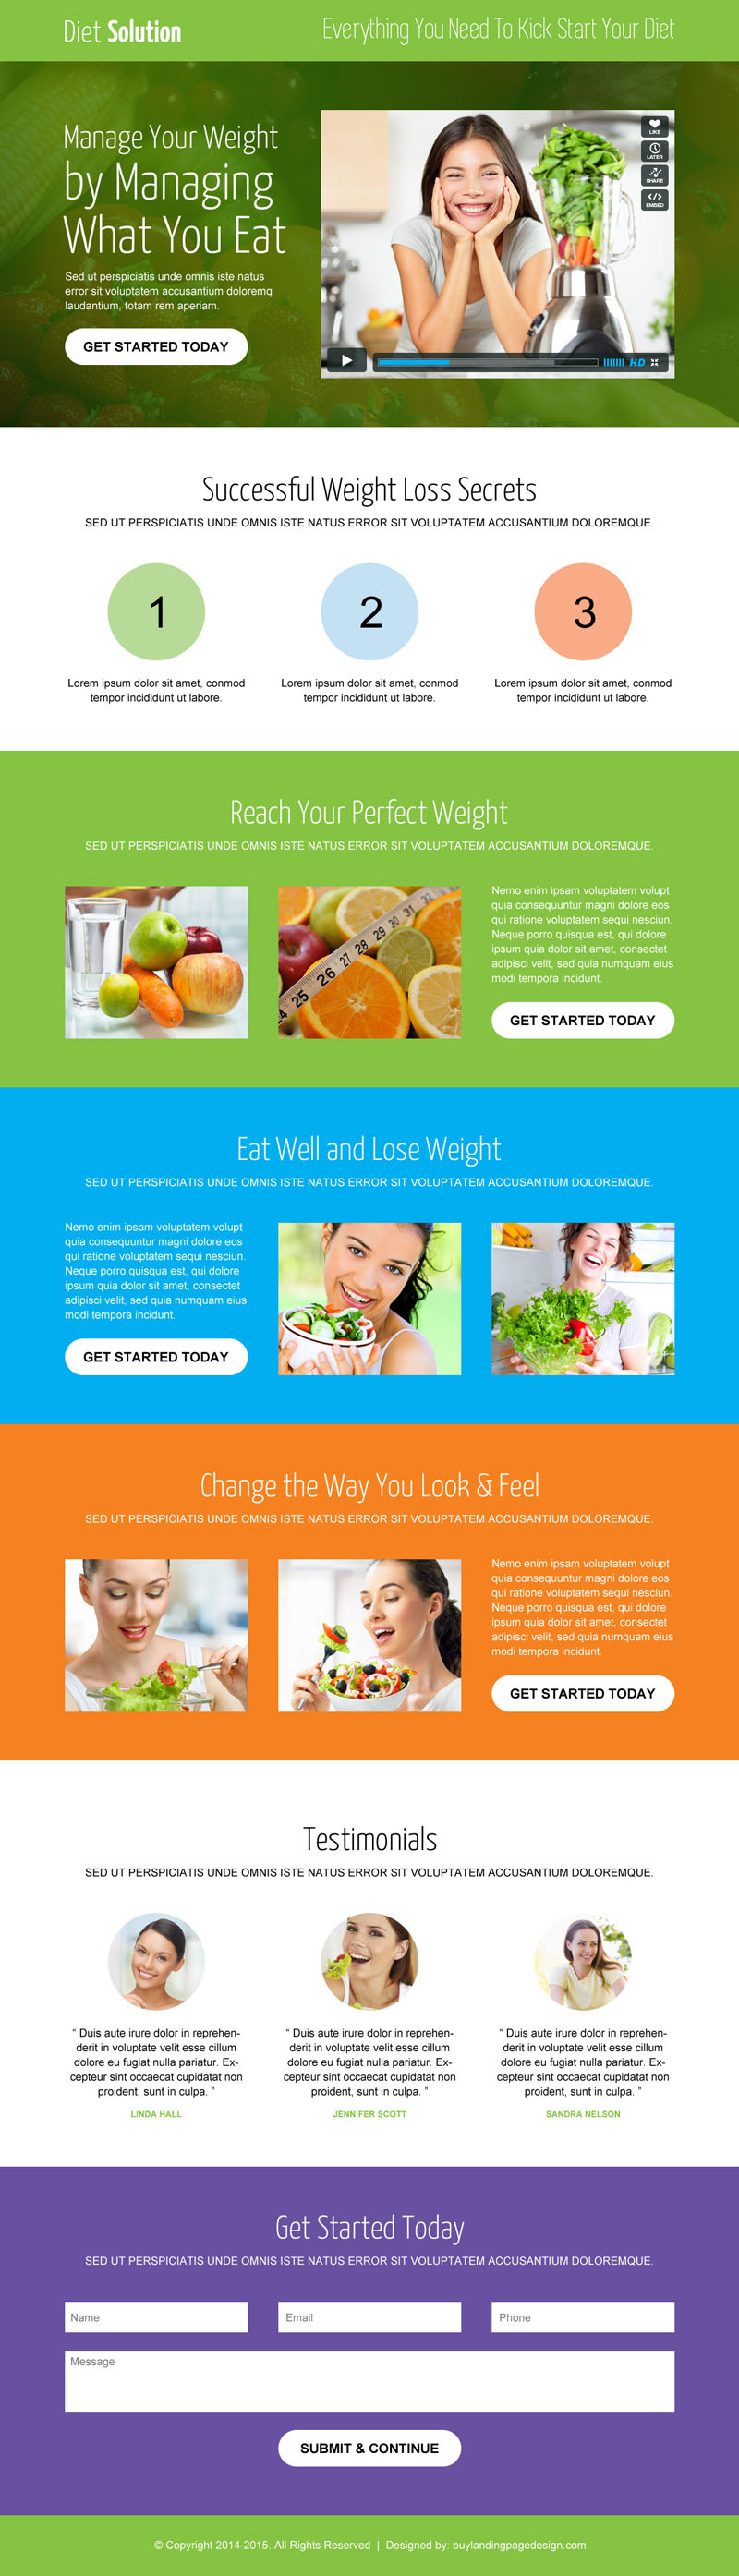 weight loss diet solution video call to action converting landing page https://www.buylandingpagedesign.com/buy/weight-loss-diet-solution-video-call-to-action-converting-landing-page/1364